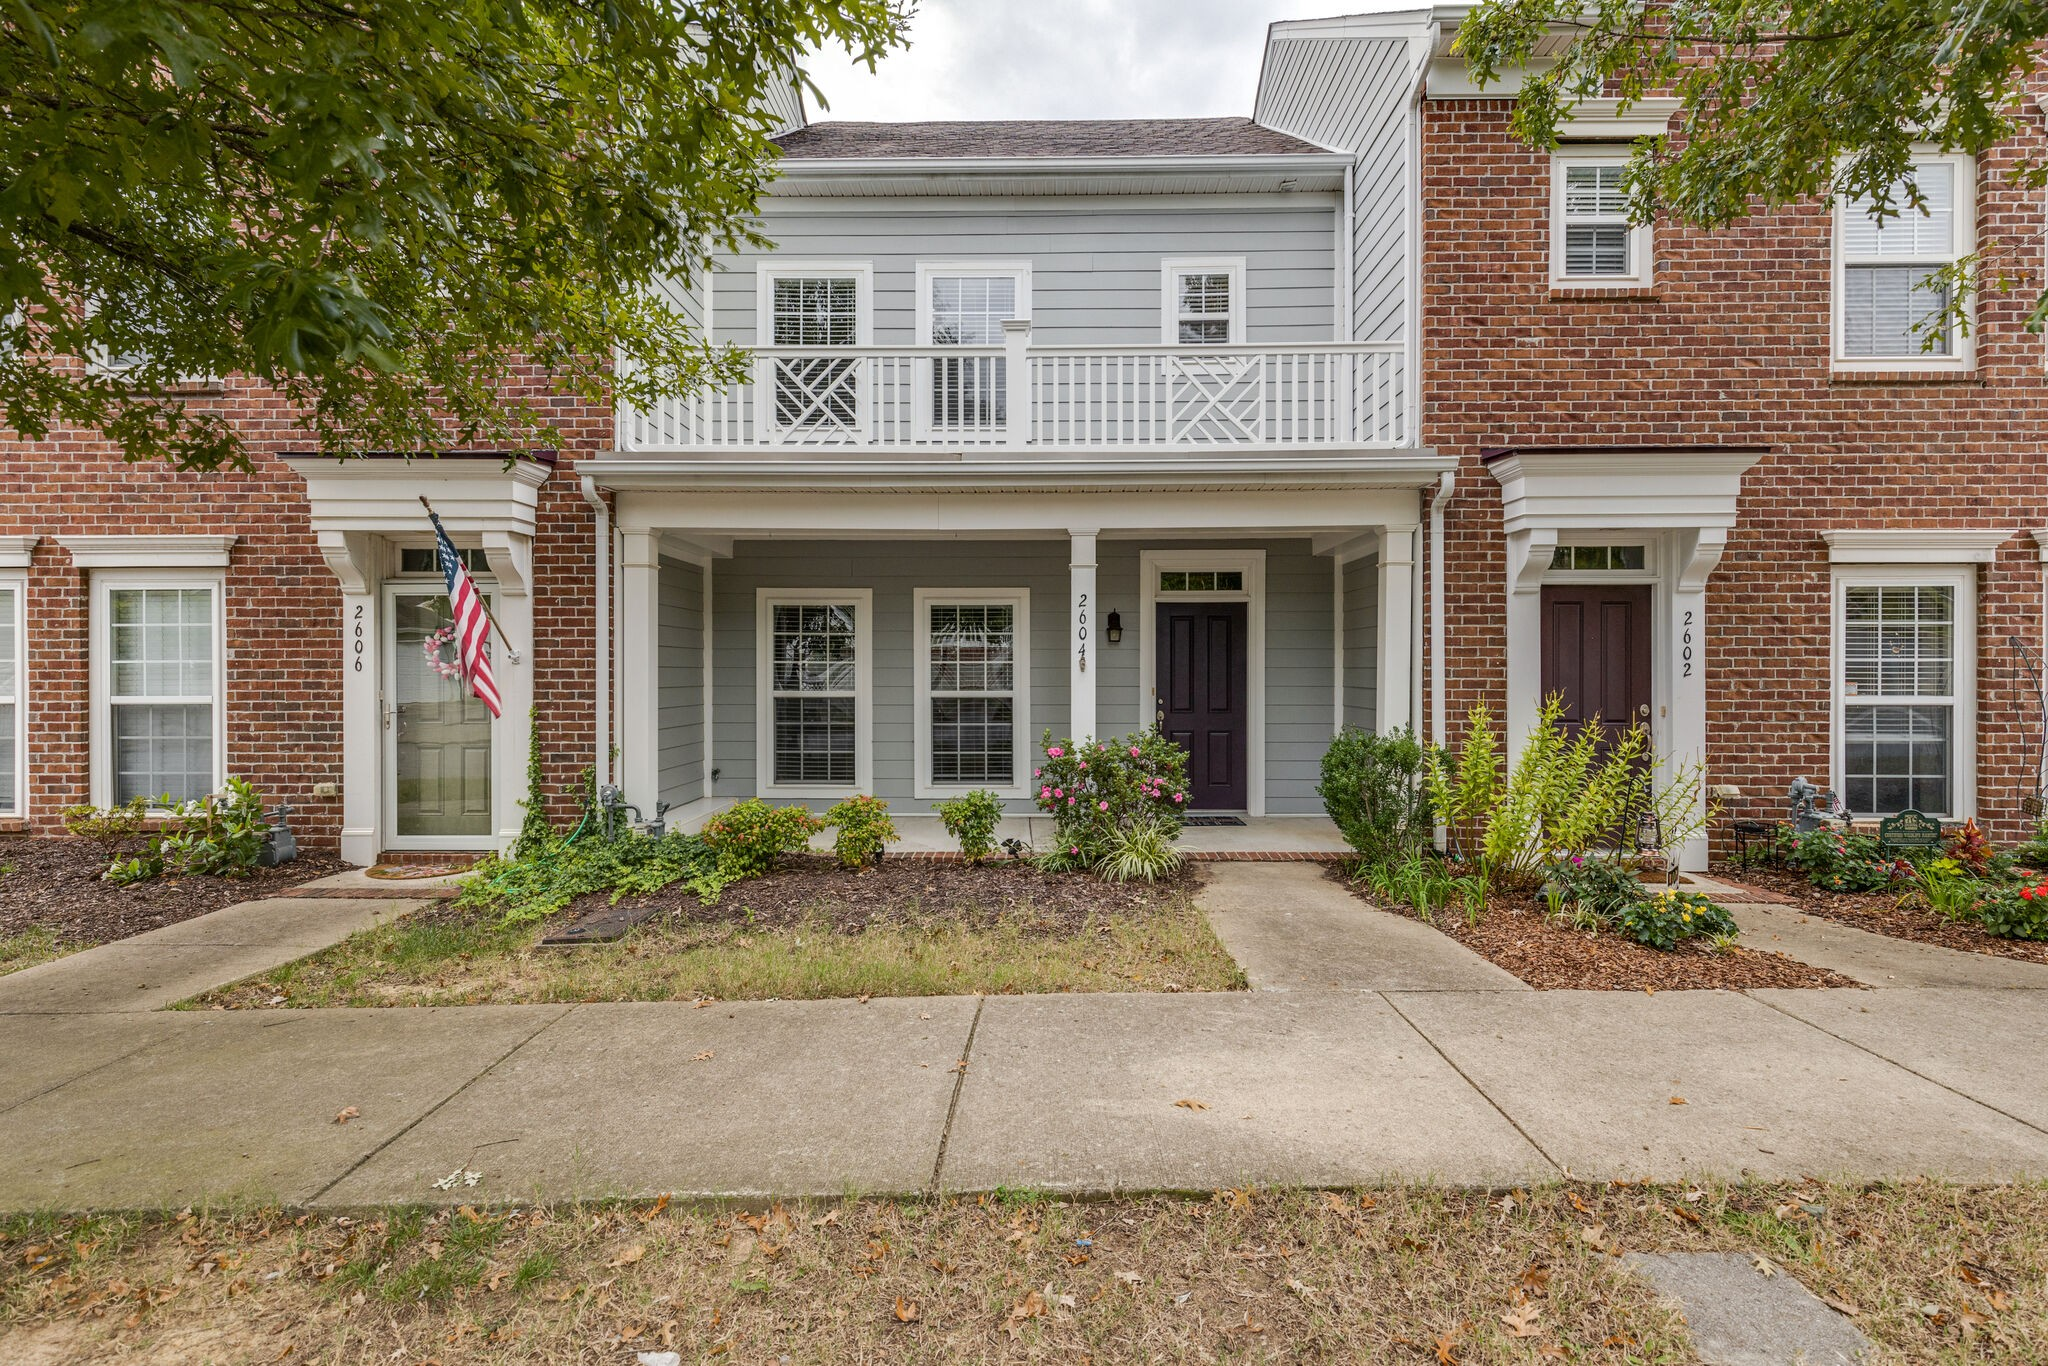 Move in ready townhome in Lenox Village.  Home features a large covered front porch, 3 Bedrooms, 2.5 Baths, all appliances remain, no carpet, upgraded lighting and more! Fenced backyard and driveway.